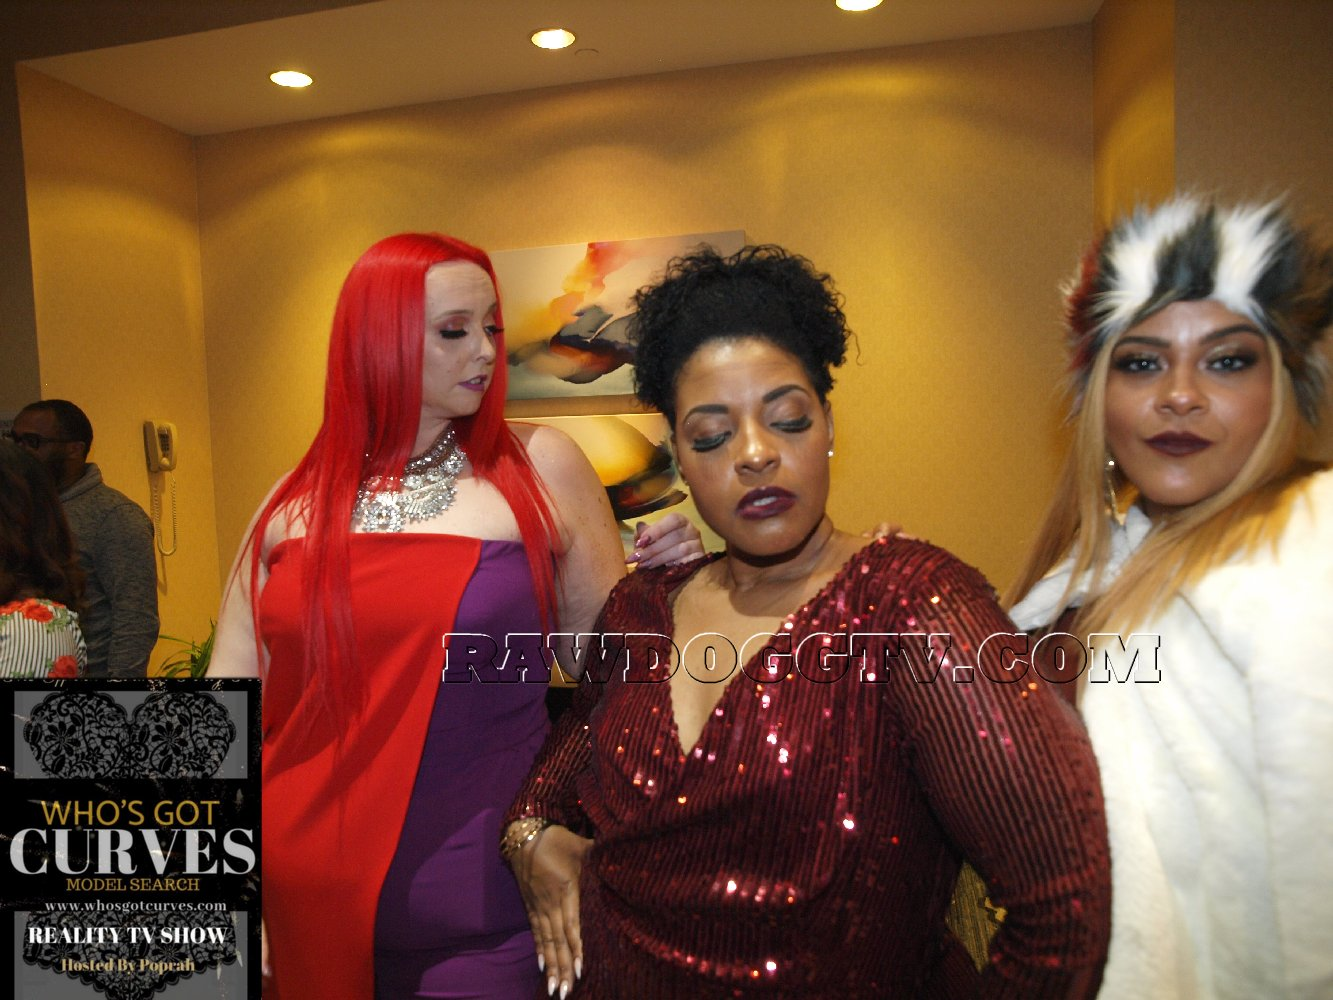 Whos Got Curves REALITY TV SHOW Atlanta Photos-HOLLYWOOD SOUTH PRESENTS httpsrawdoggtv (9)